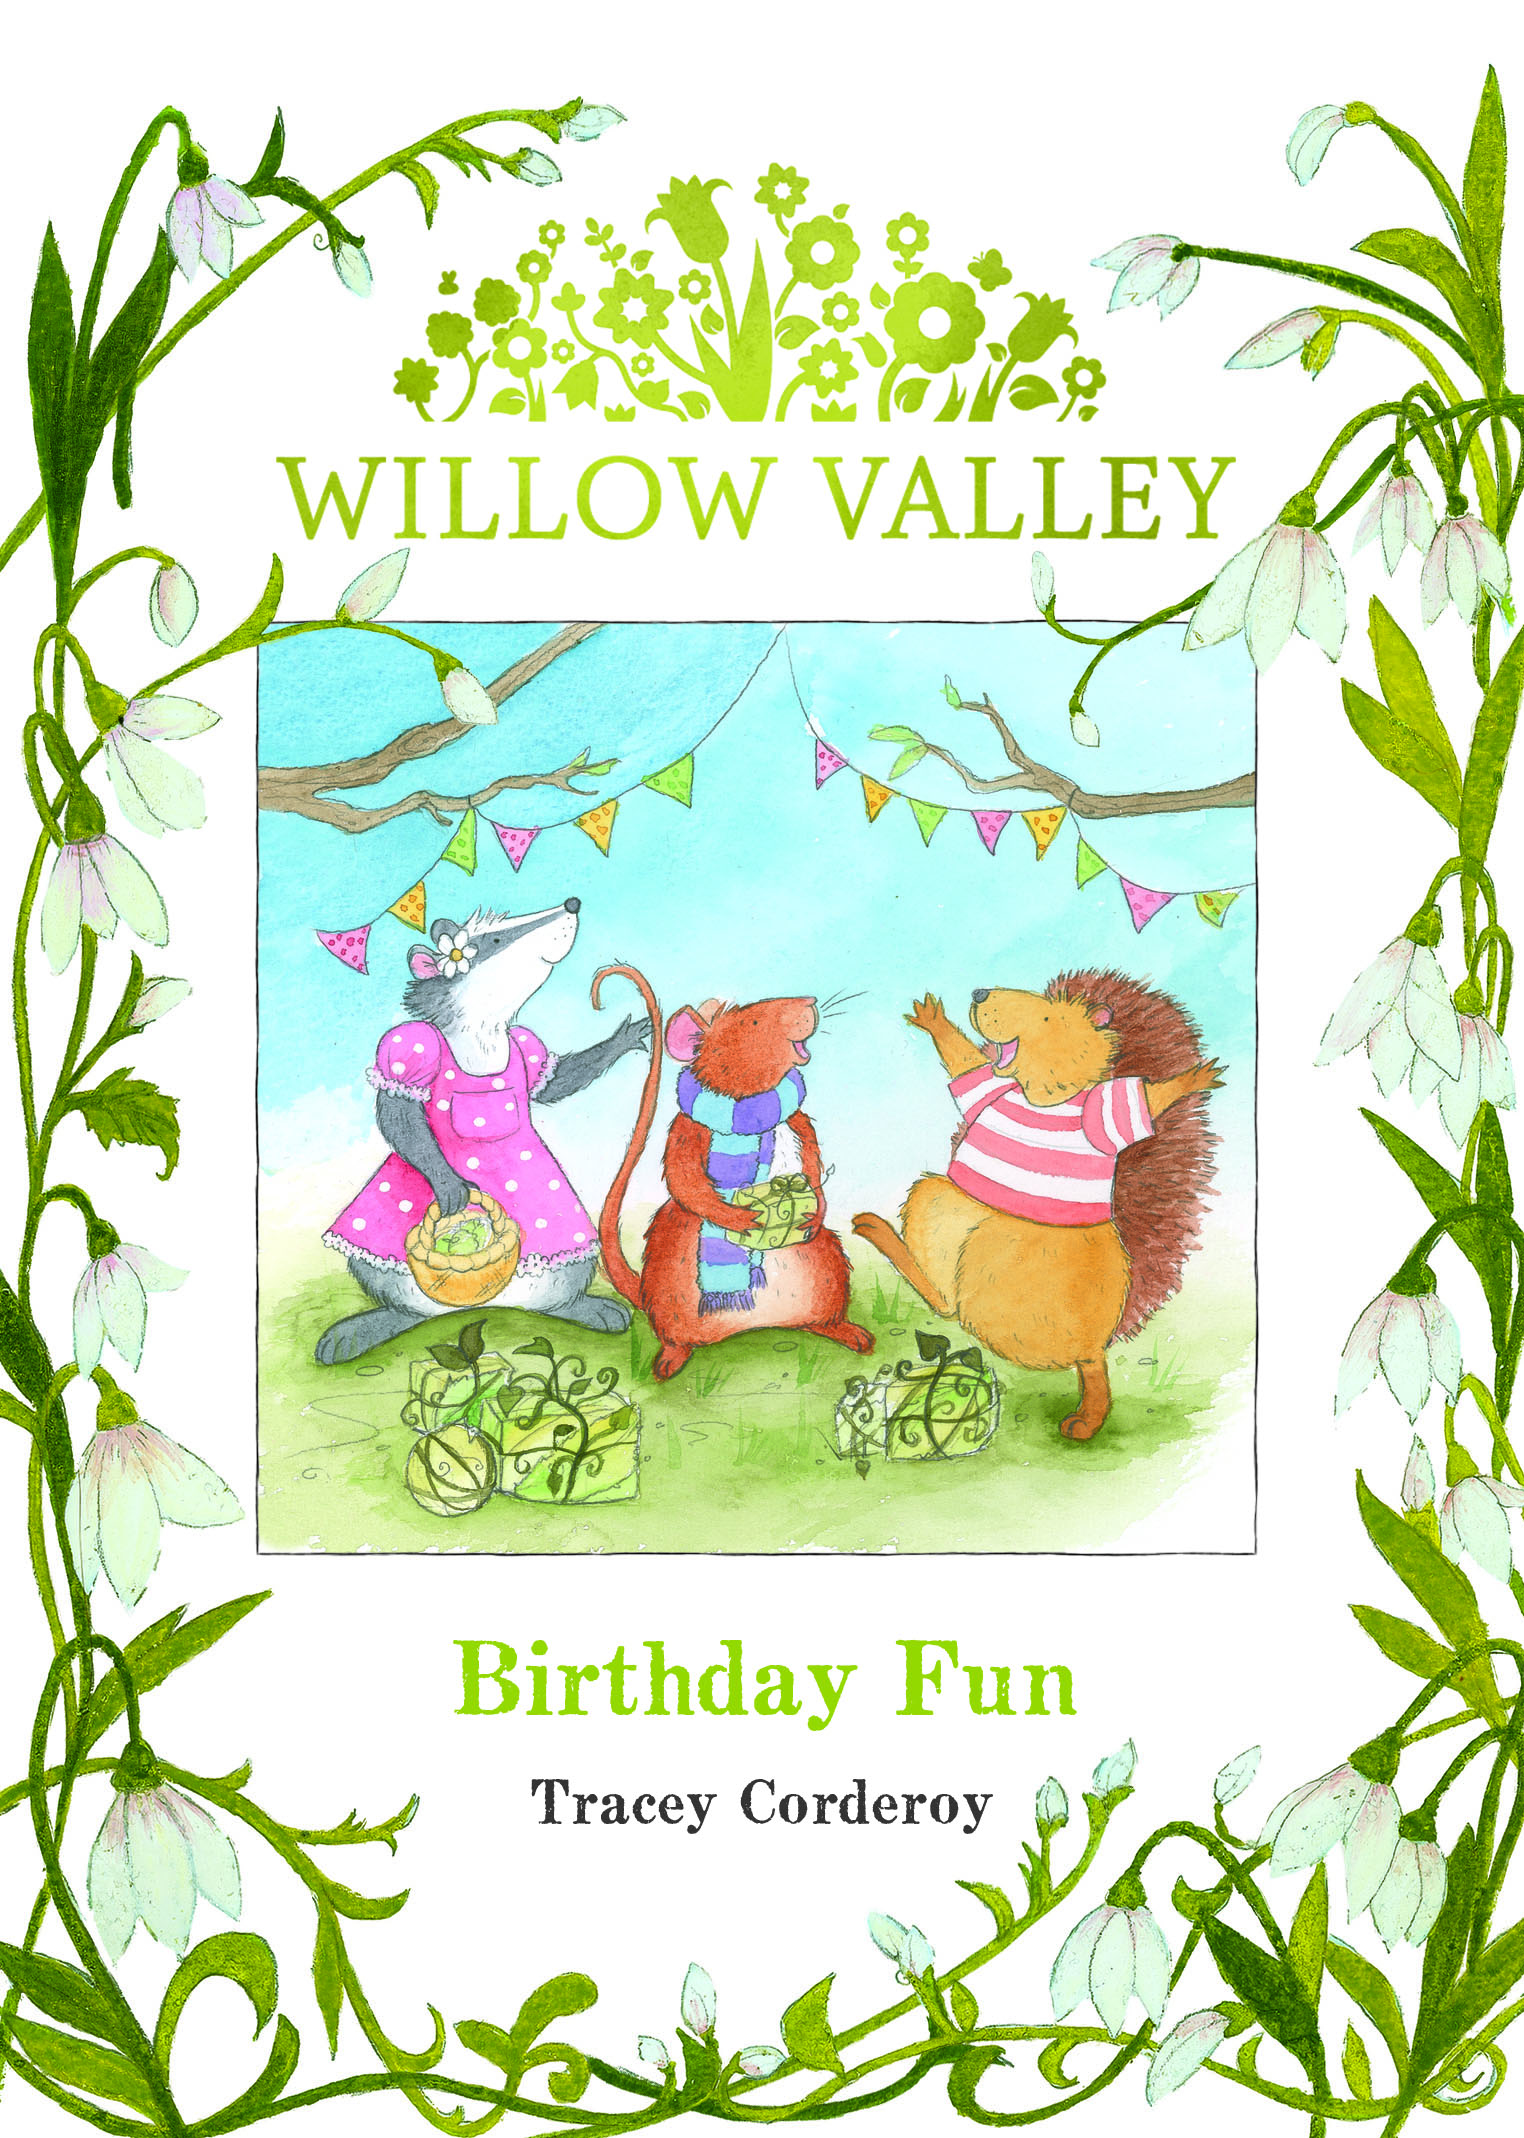 Willow Valley - Birthday Fun